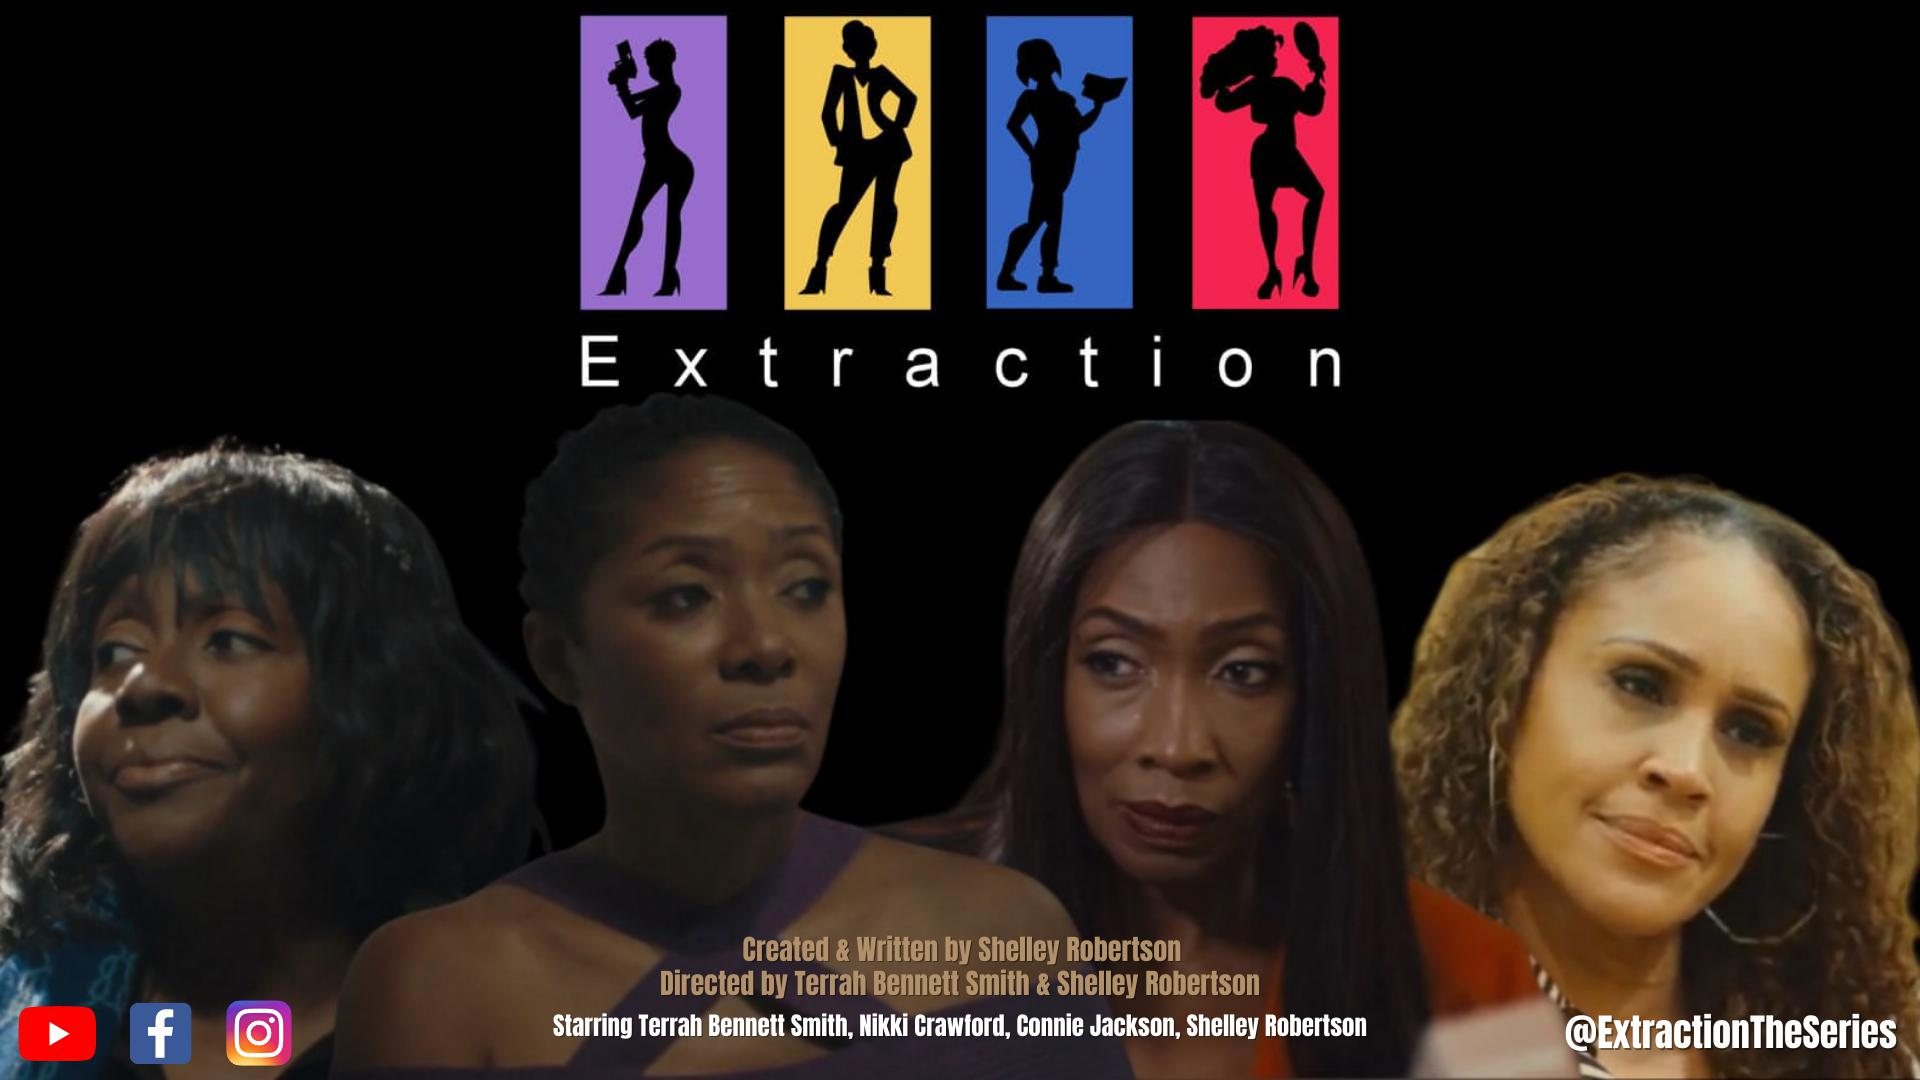 EXTRACTION THE SERIES